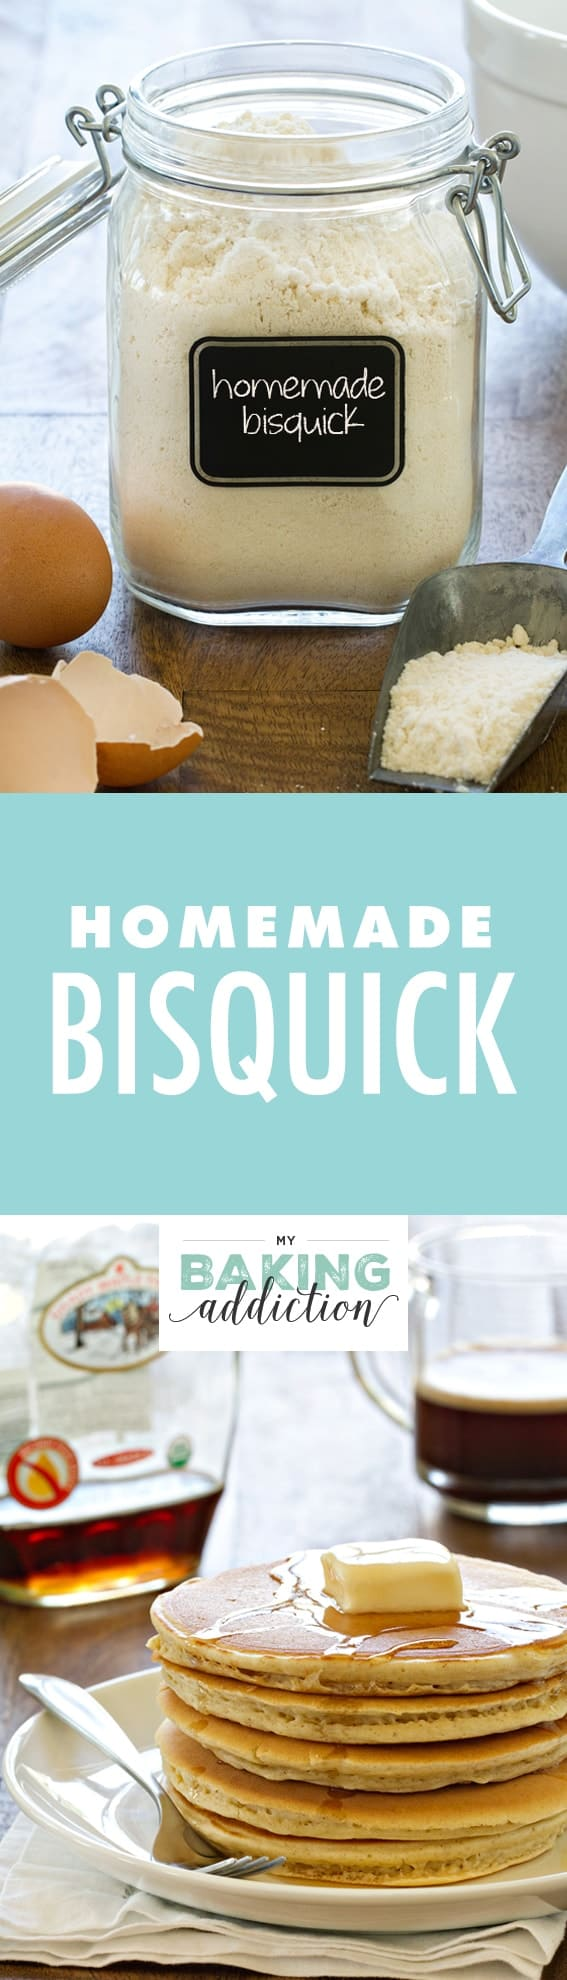 Homemade bisquick my baking addiction for Atkins cuisine all purpose baking mix where to buy